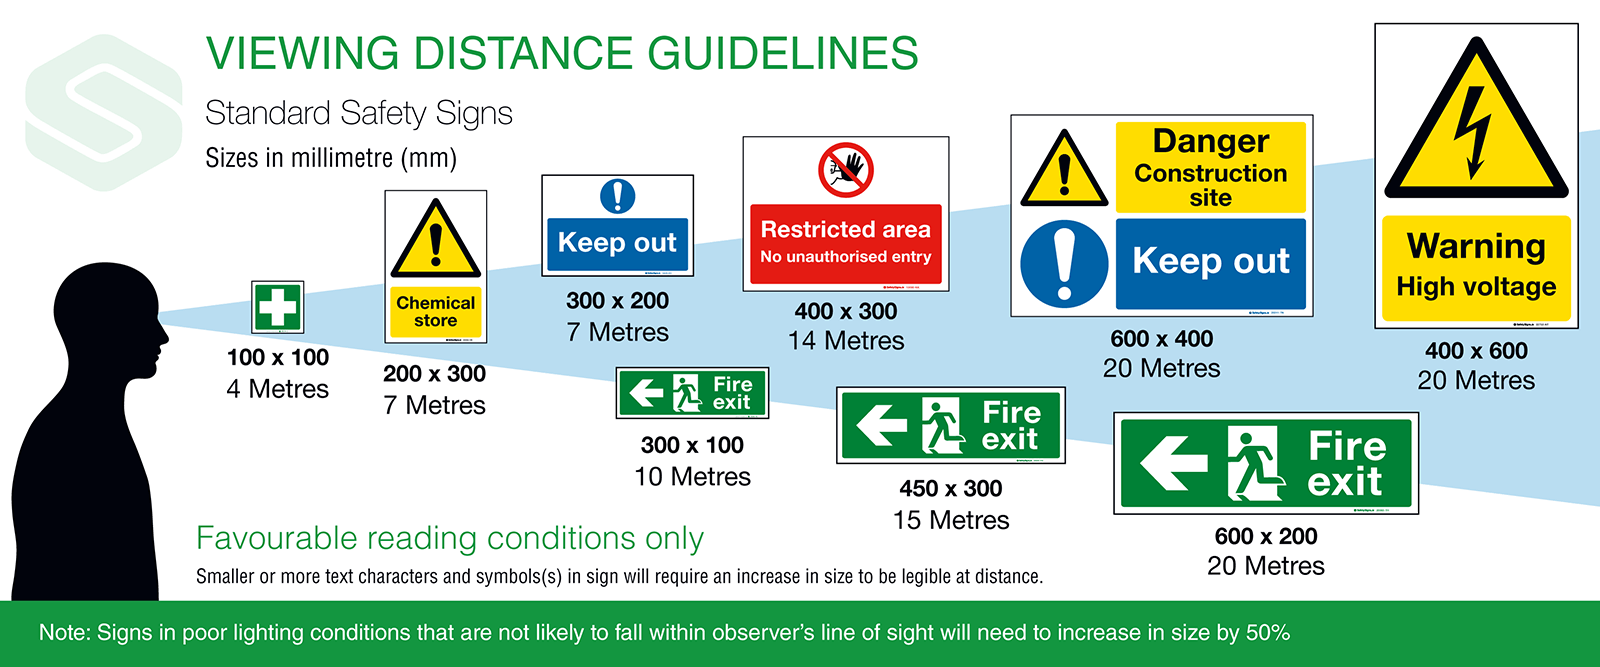 Sign Viewing Distance Guidelines